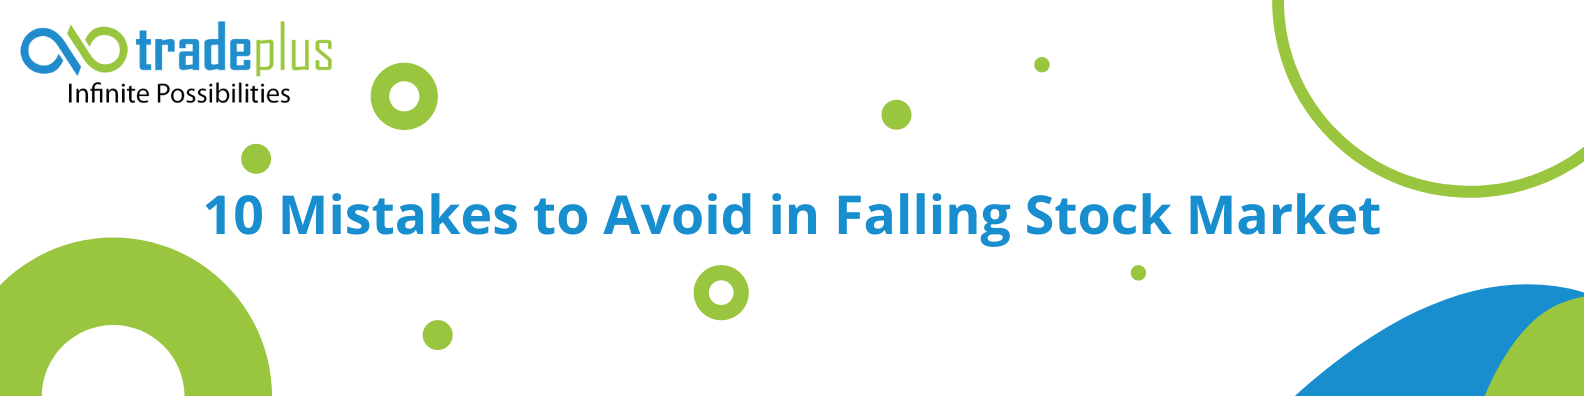 Ten big mistakes to avoid in a falling stock market Ten big mistakes to avoid in a falling stock market